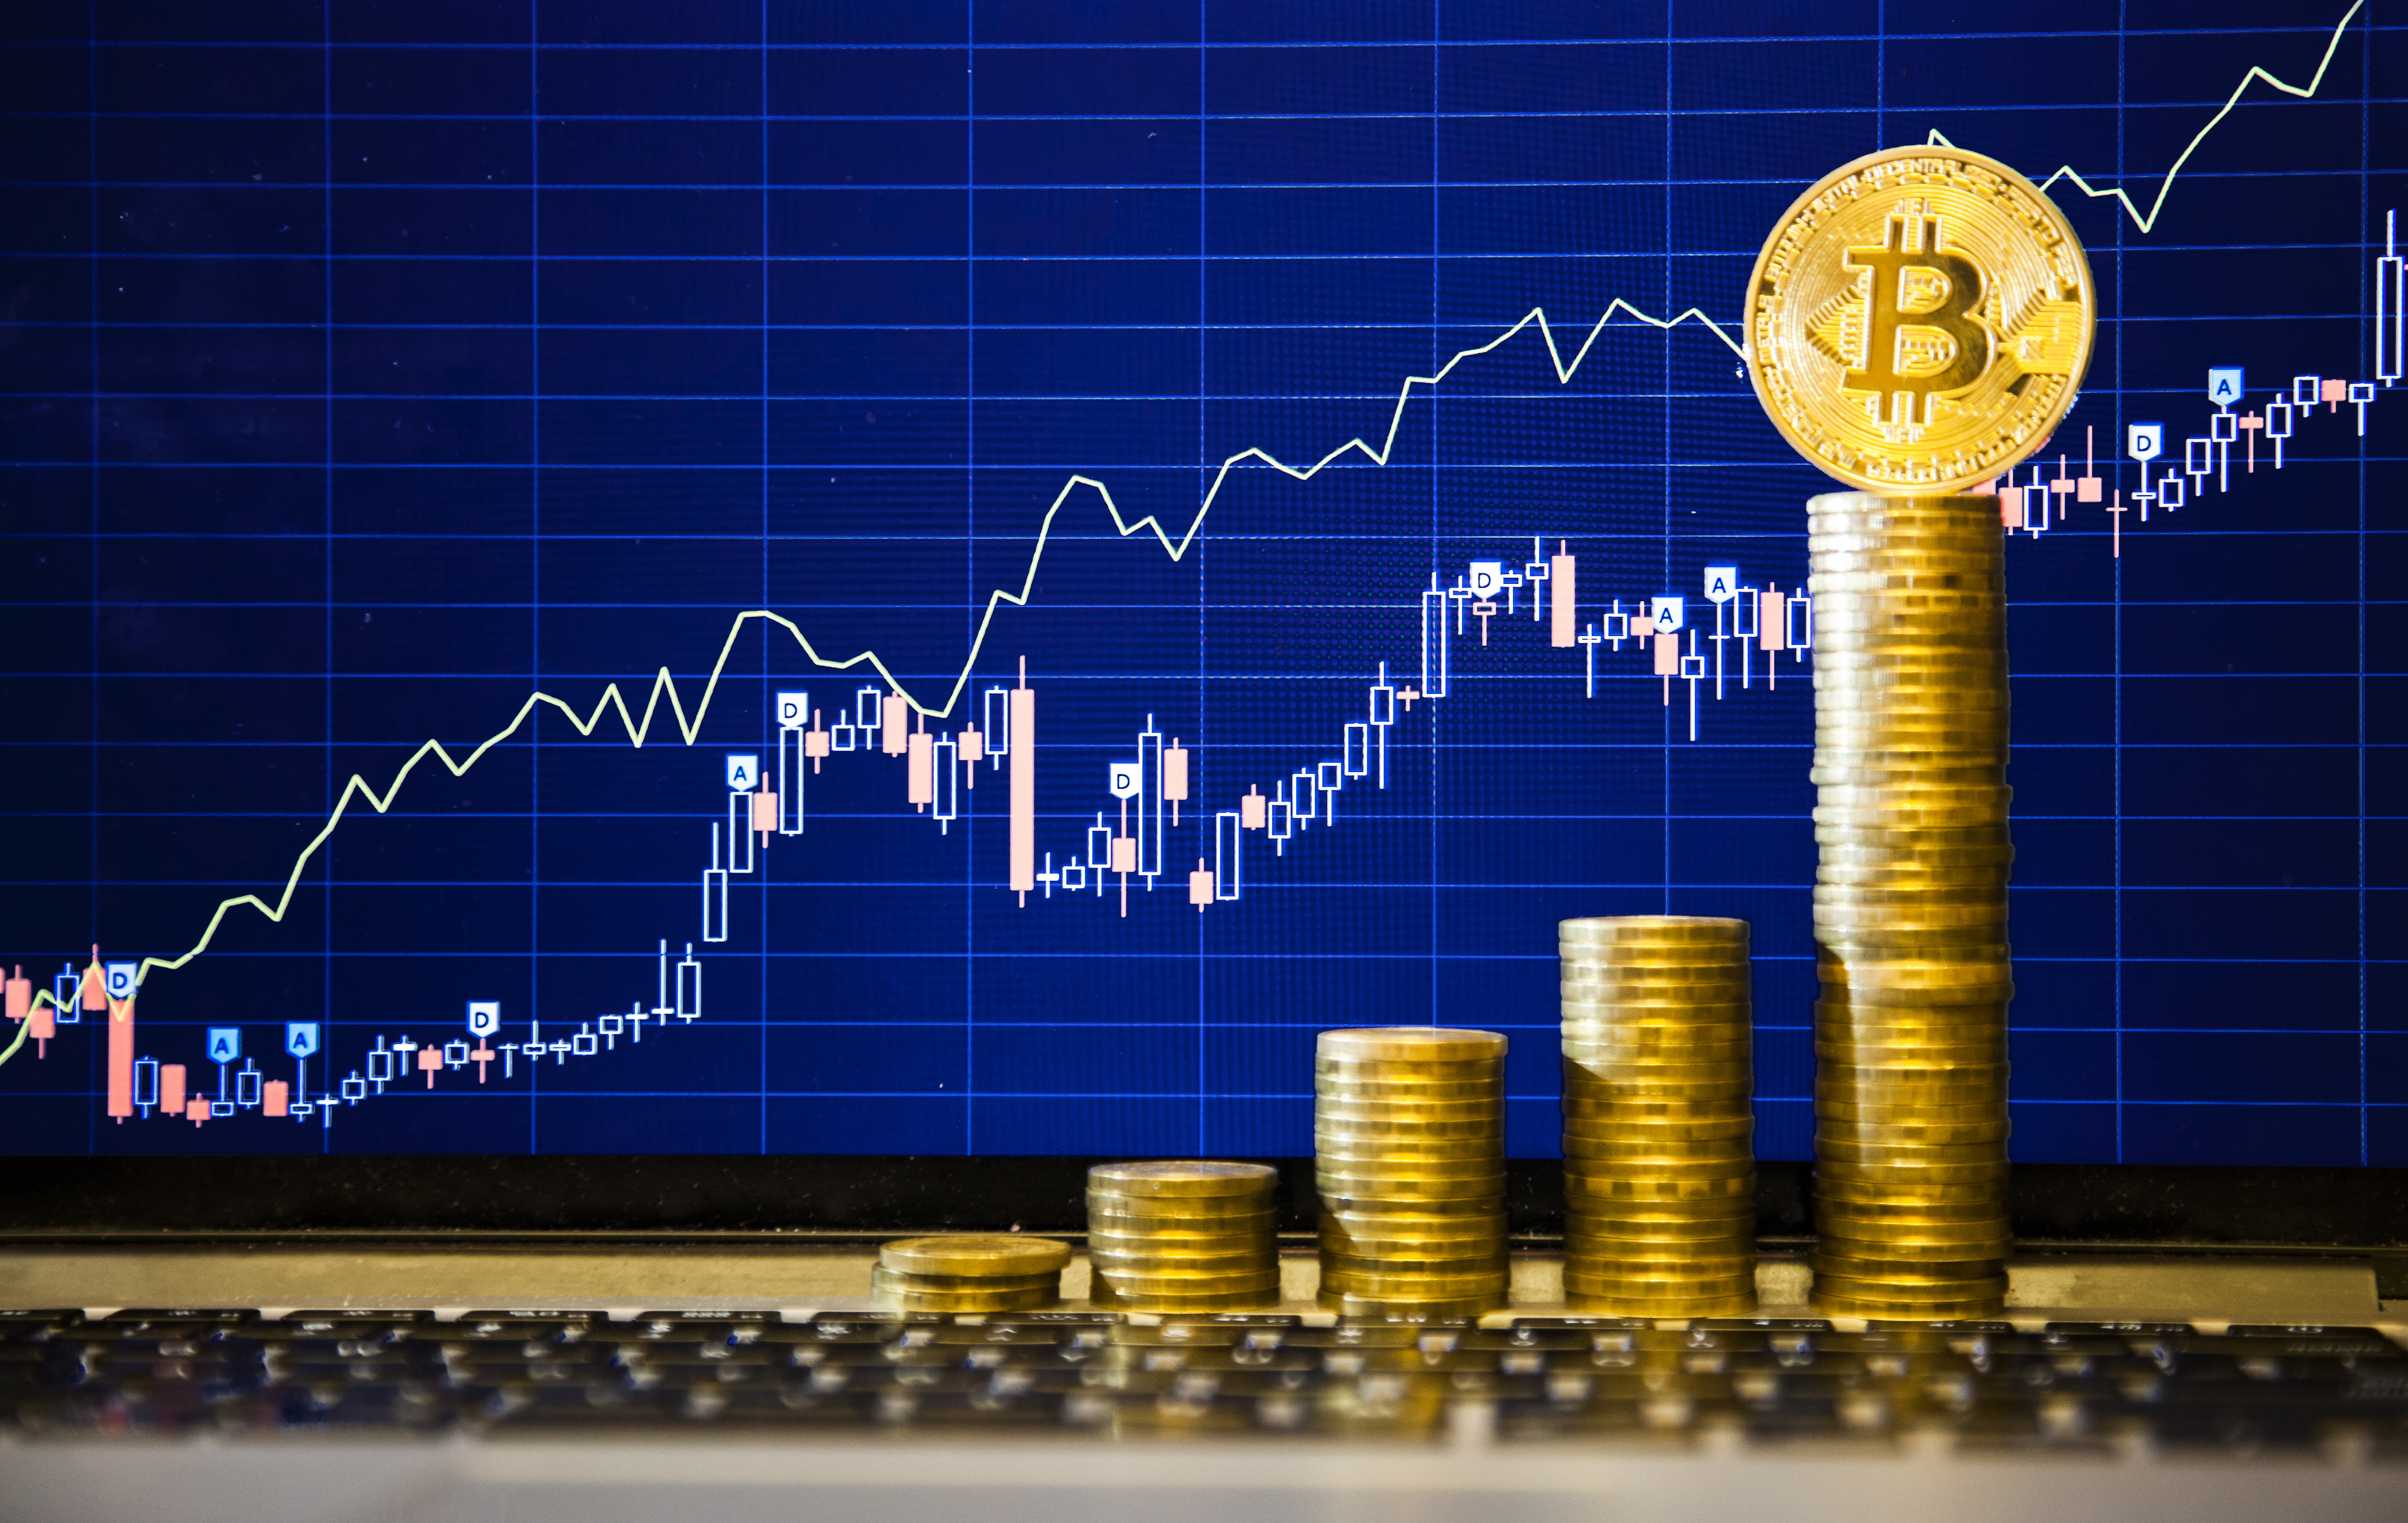 Why is Bitcoin's price at an all-time high? And how is its value determined?